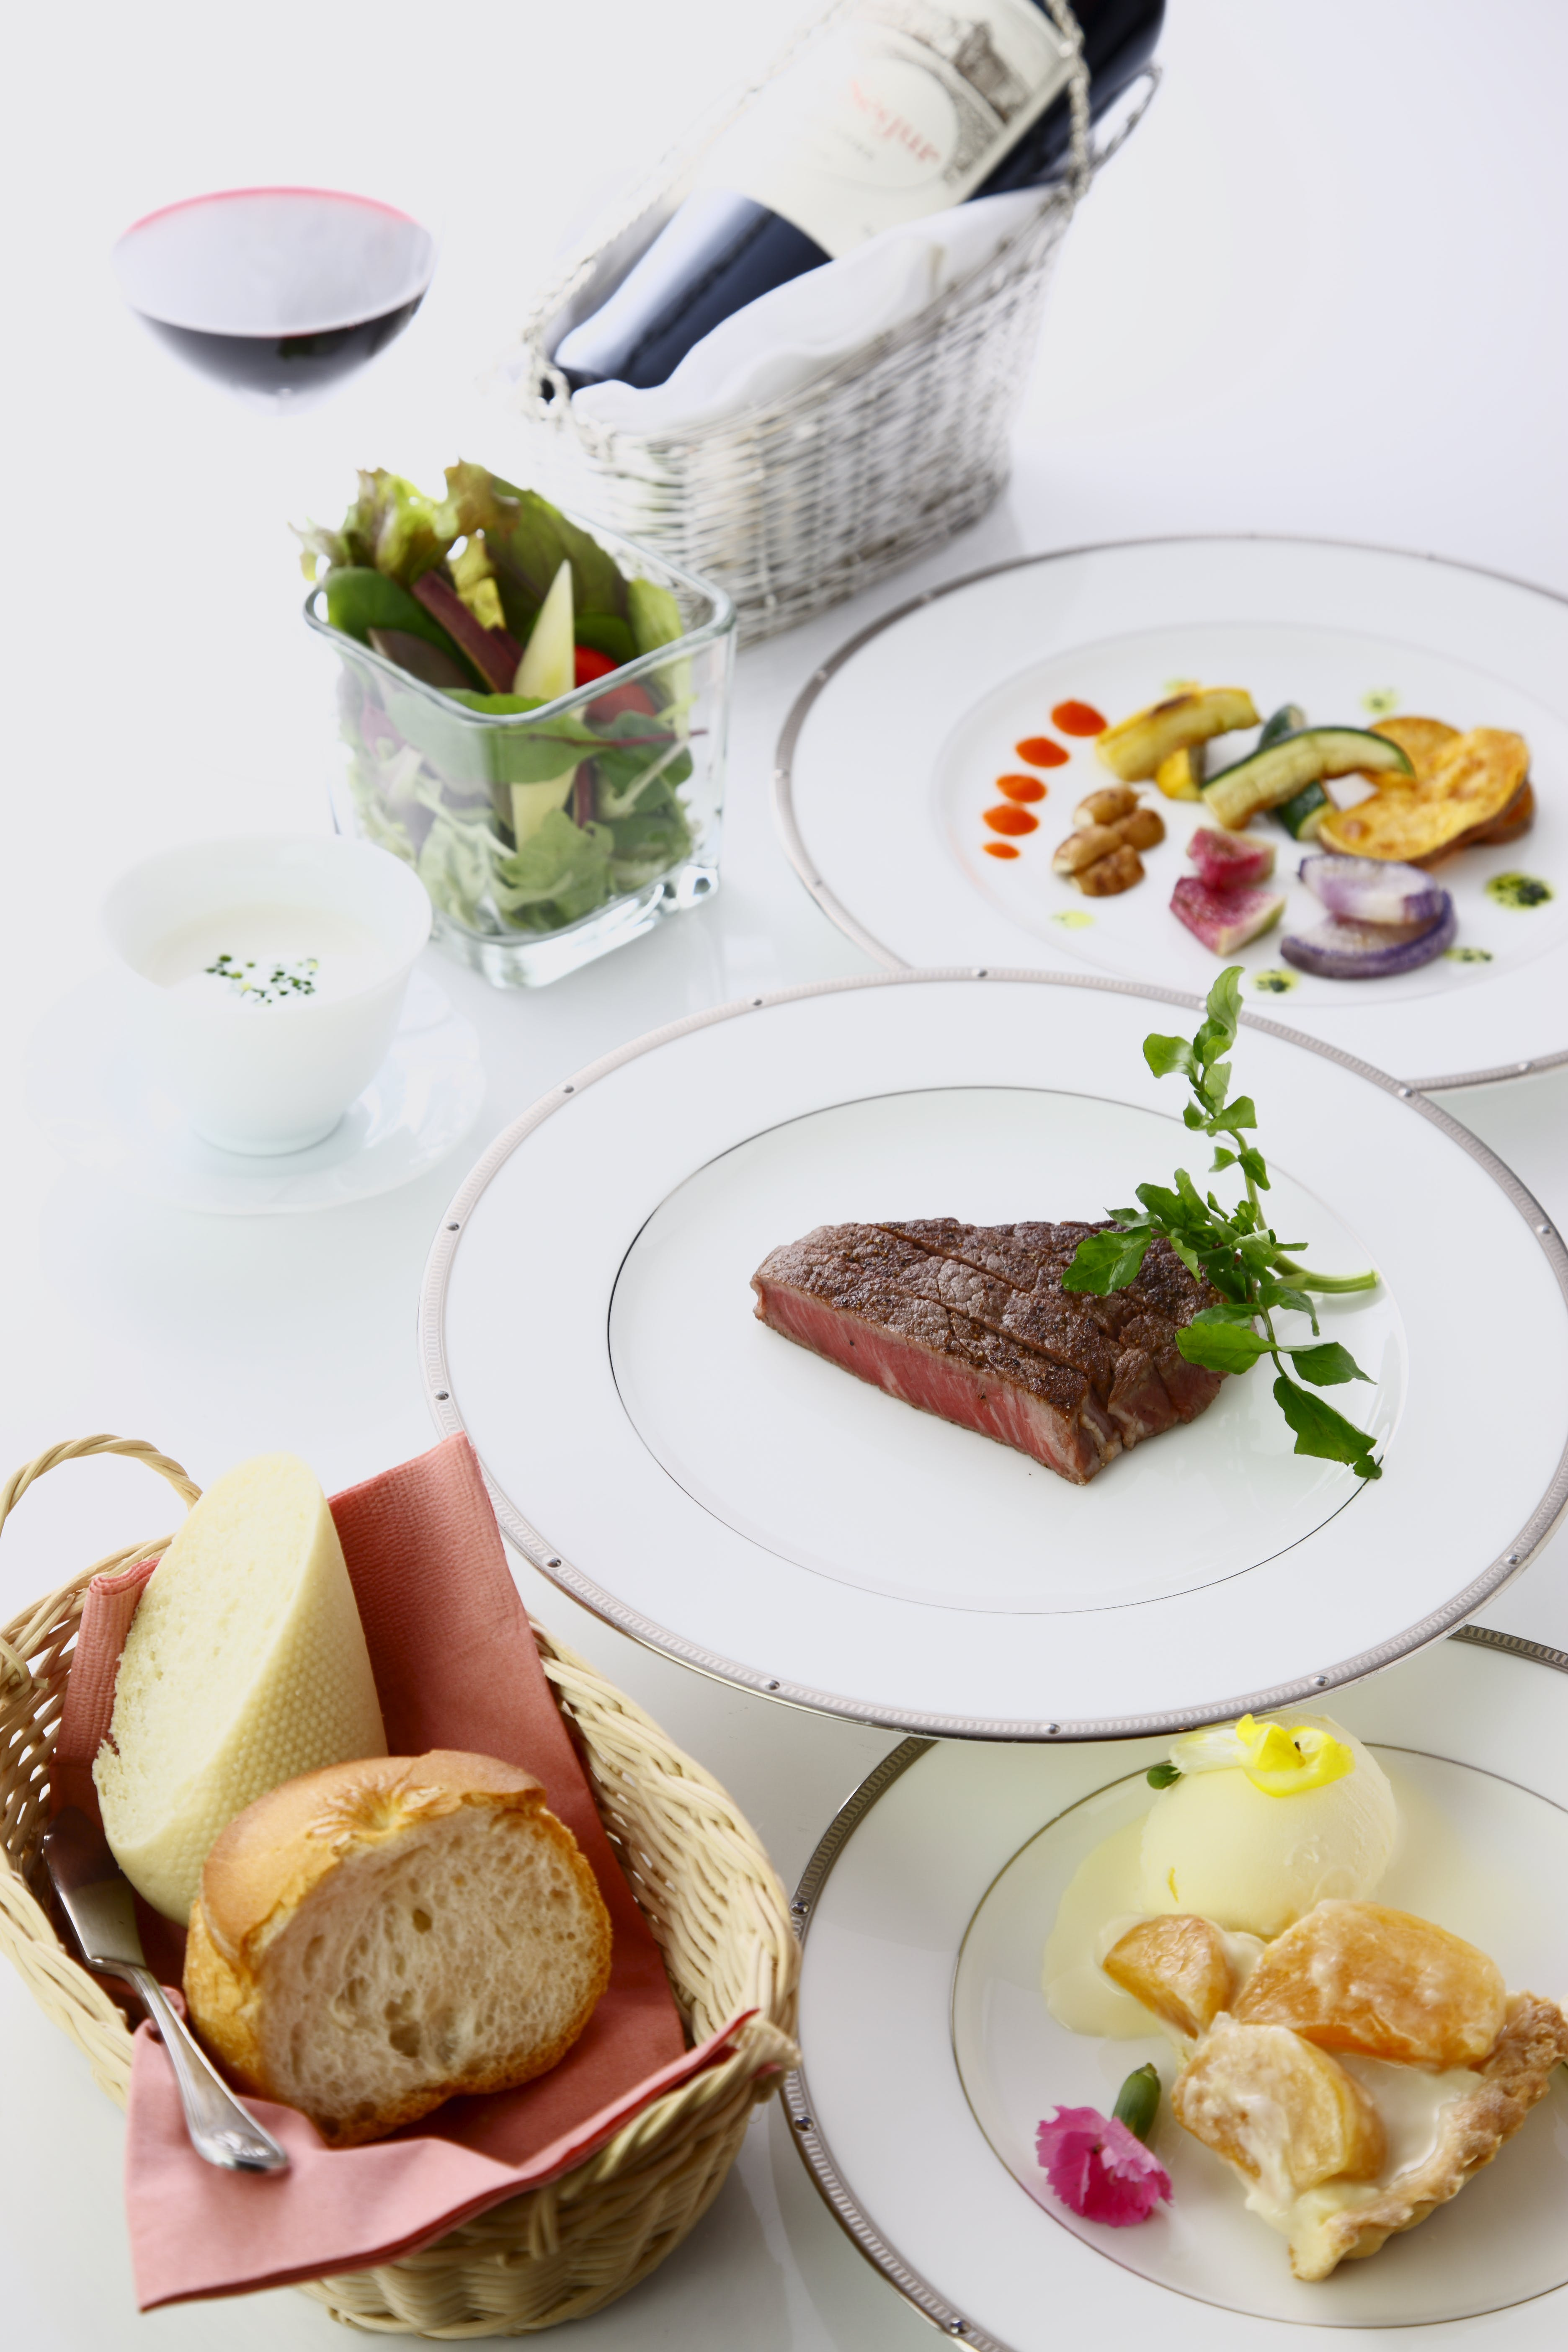 Plated Dishes On White Surface